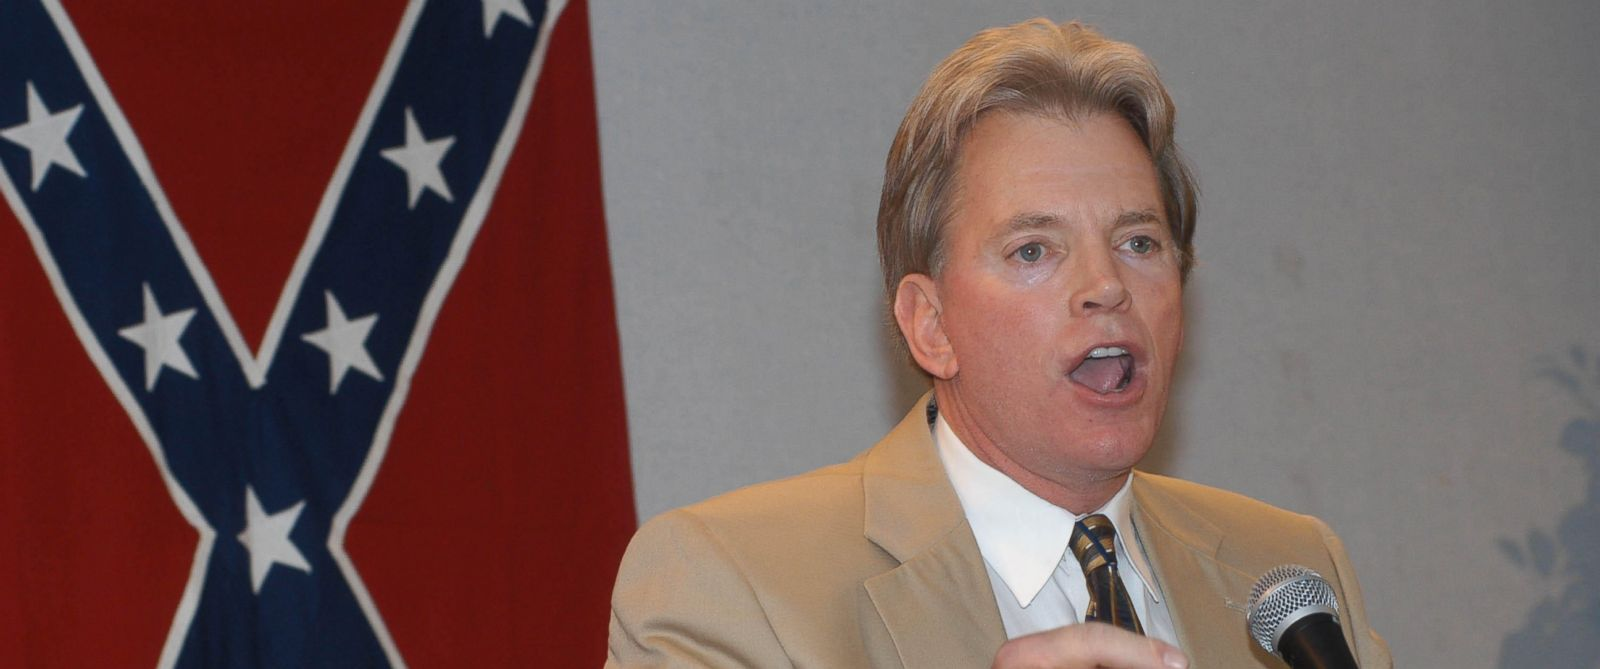 PHOTO: Former Ku Klux Klan leader David Duke speaks to supporters at a reception, May 29, 2004, in Kenner, Louisiana.